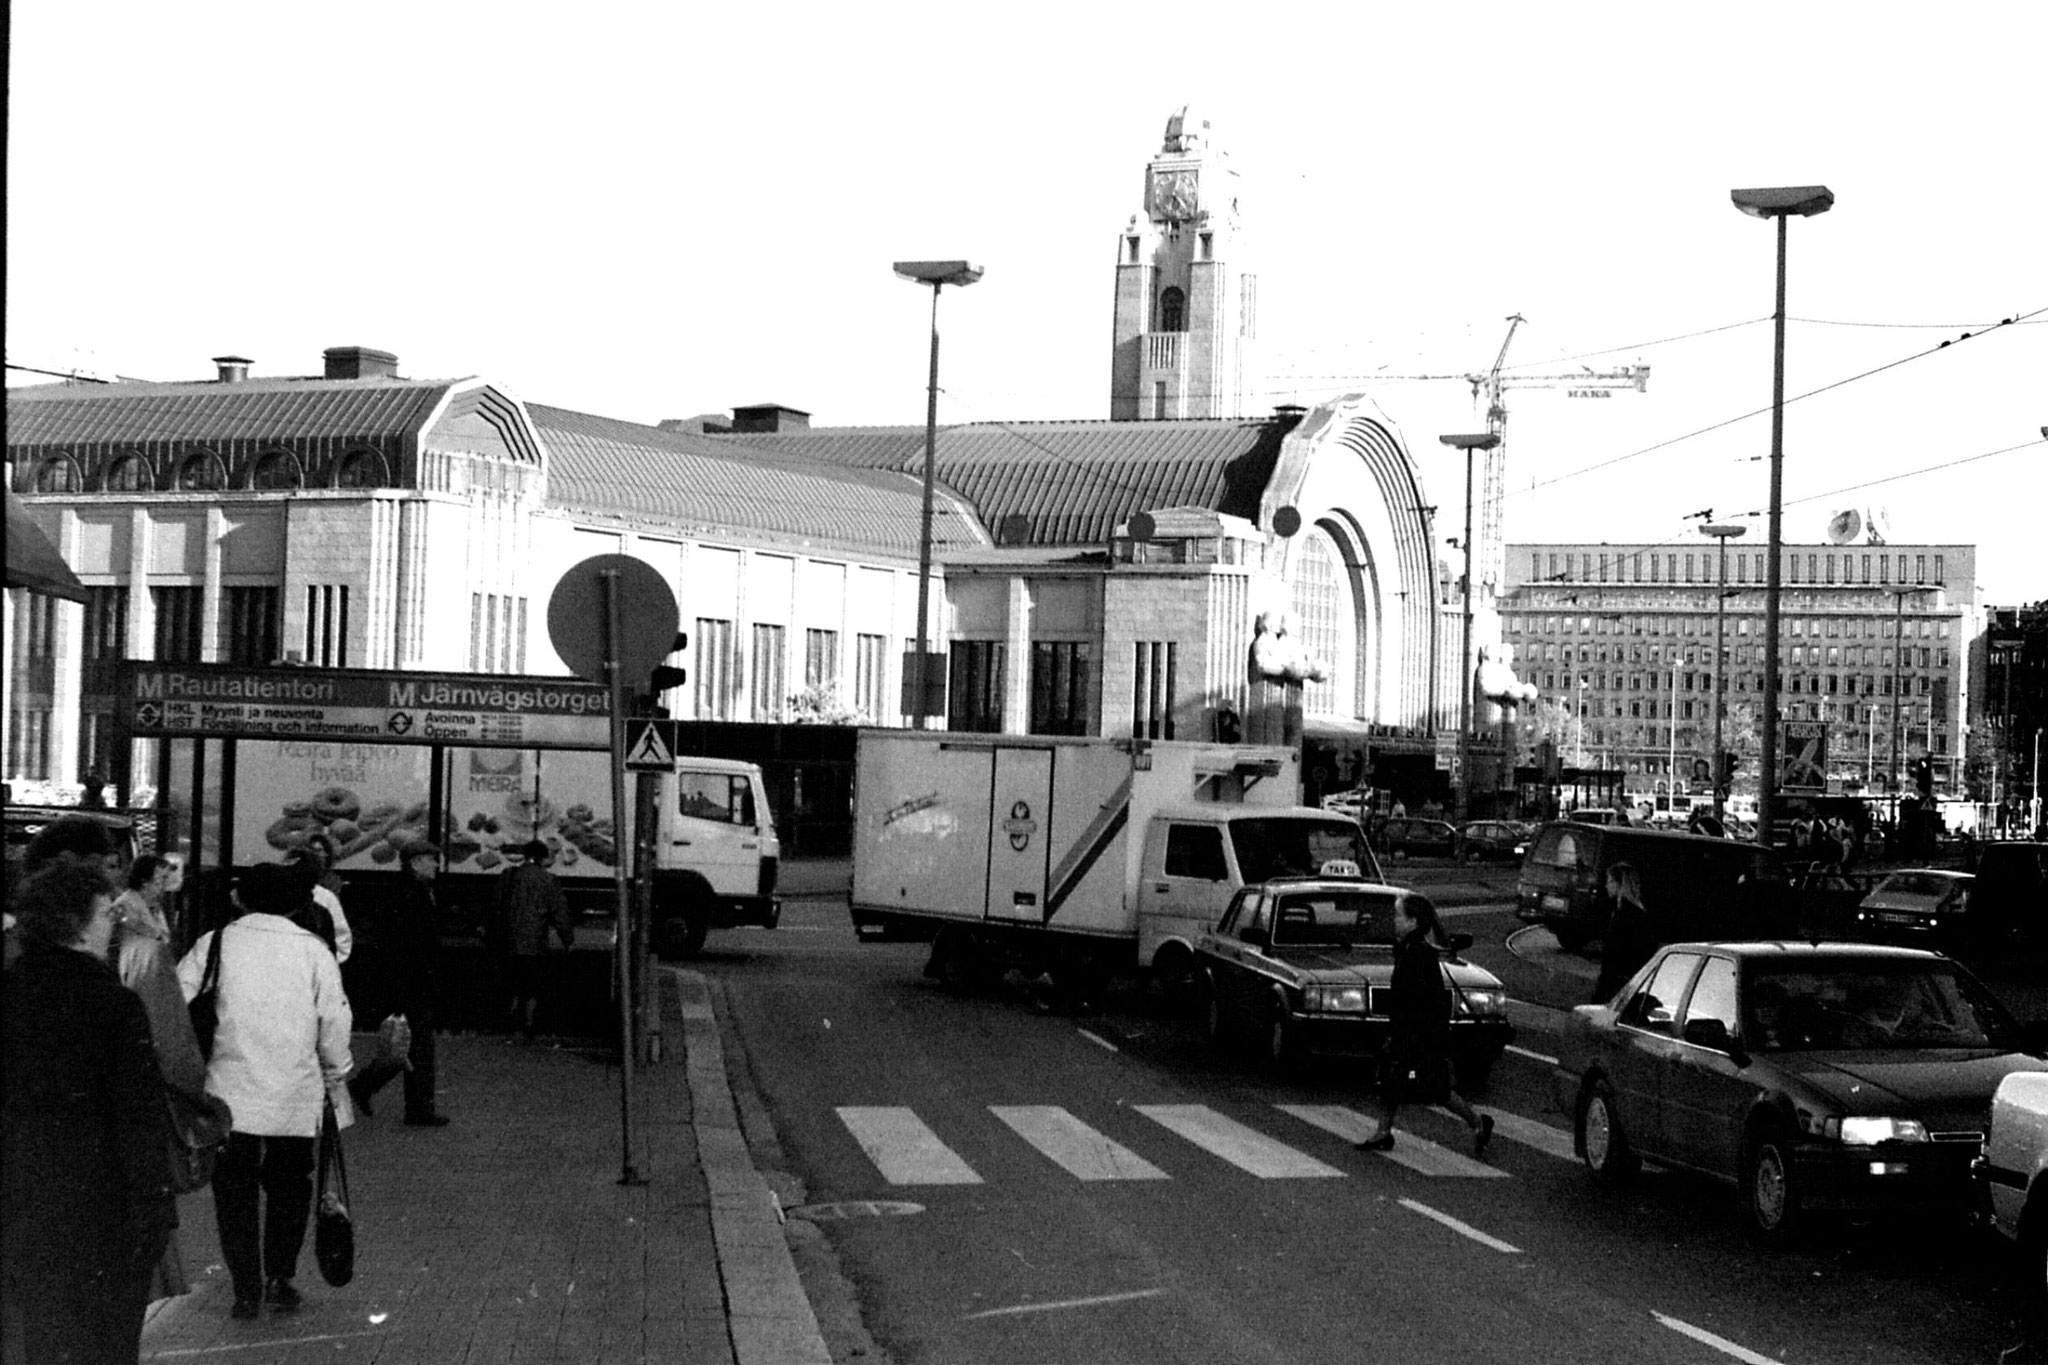 13/10/1988: 4: Helsinki train station